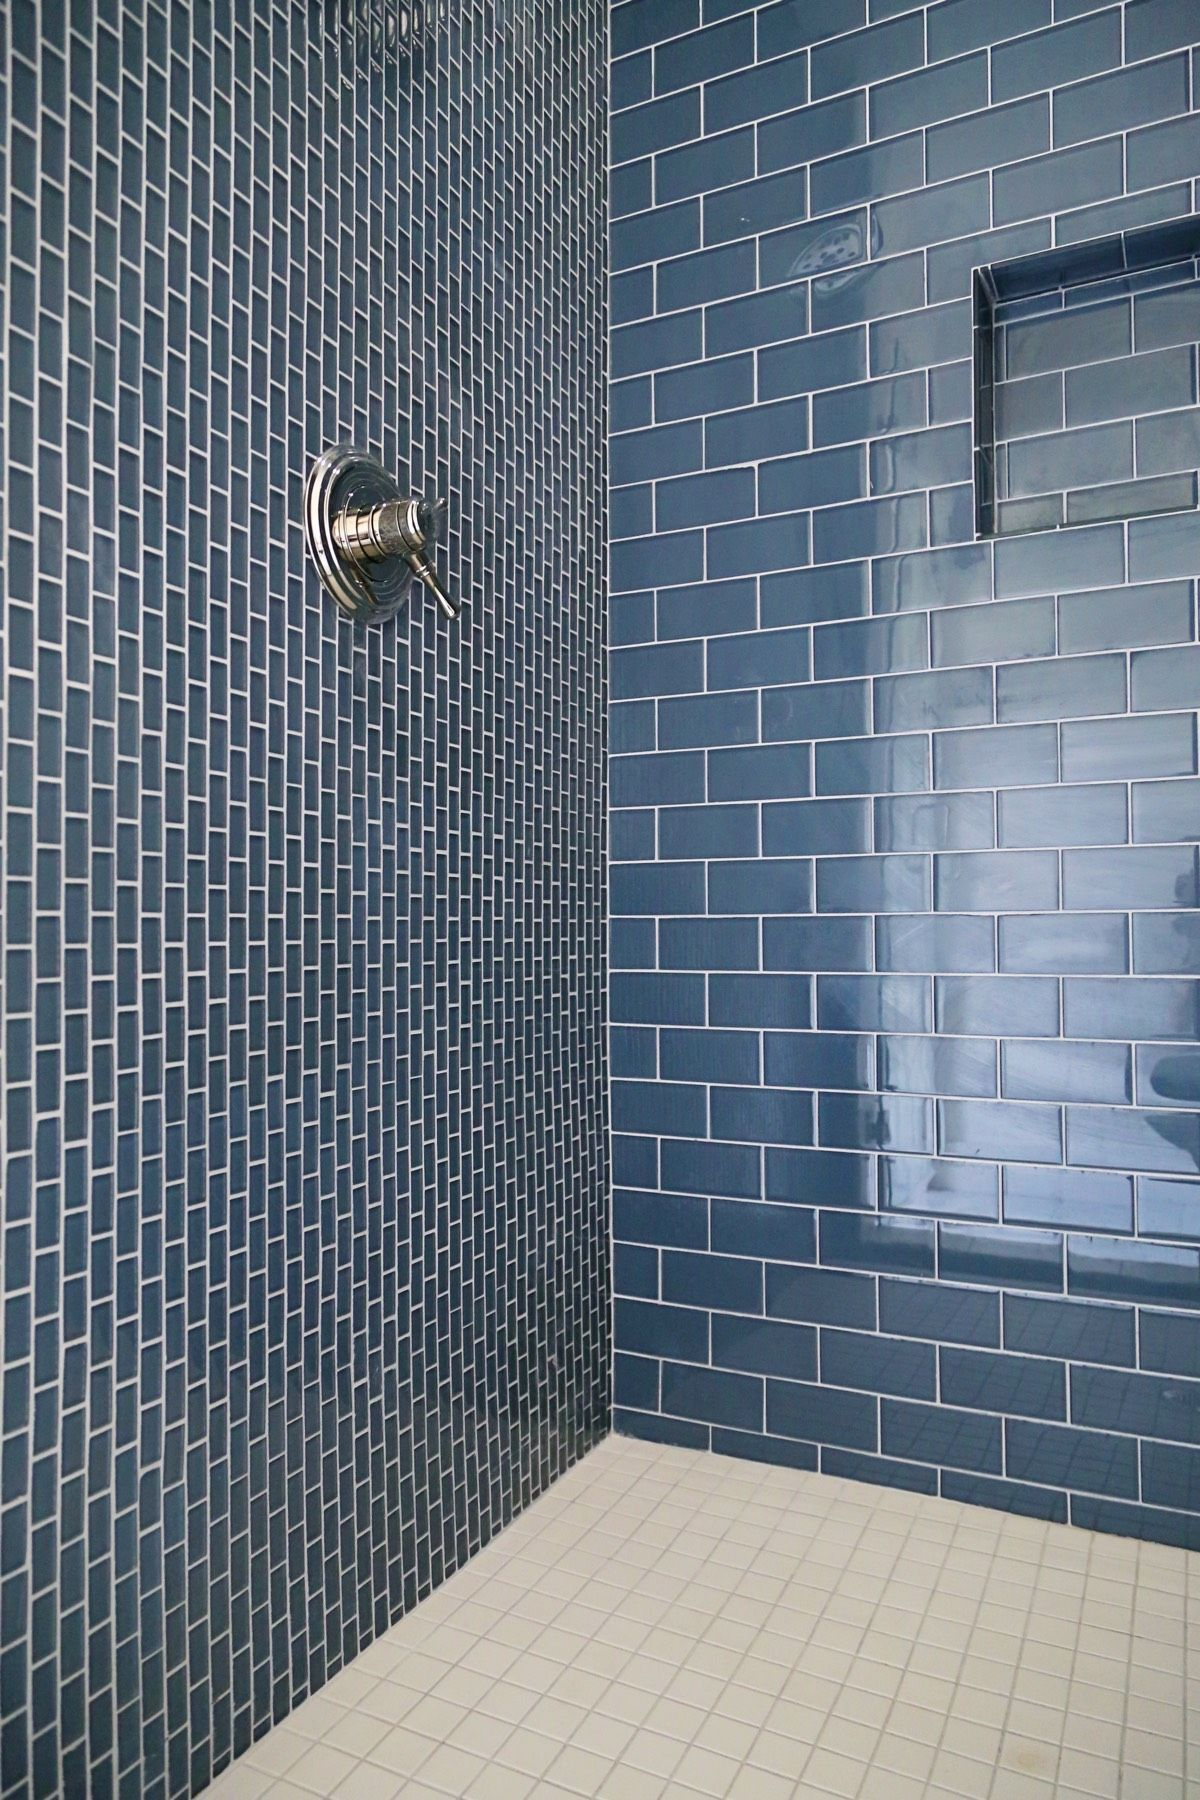 How To Install A Duk Liner Waterproof Shower Niche Shelf With